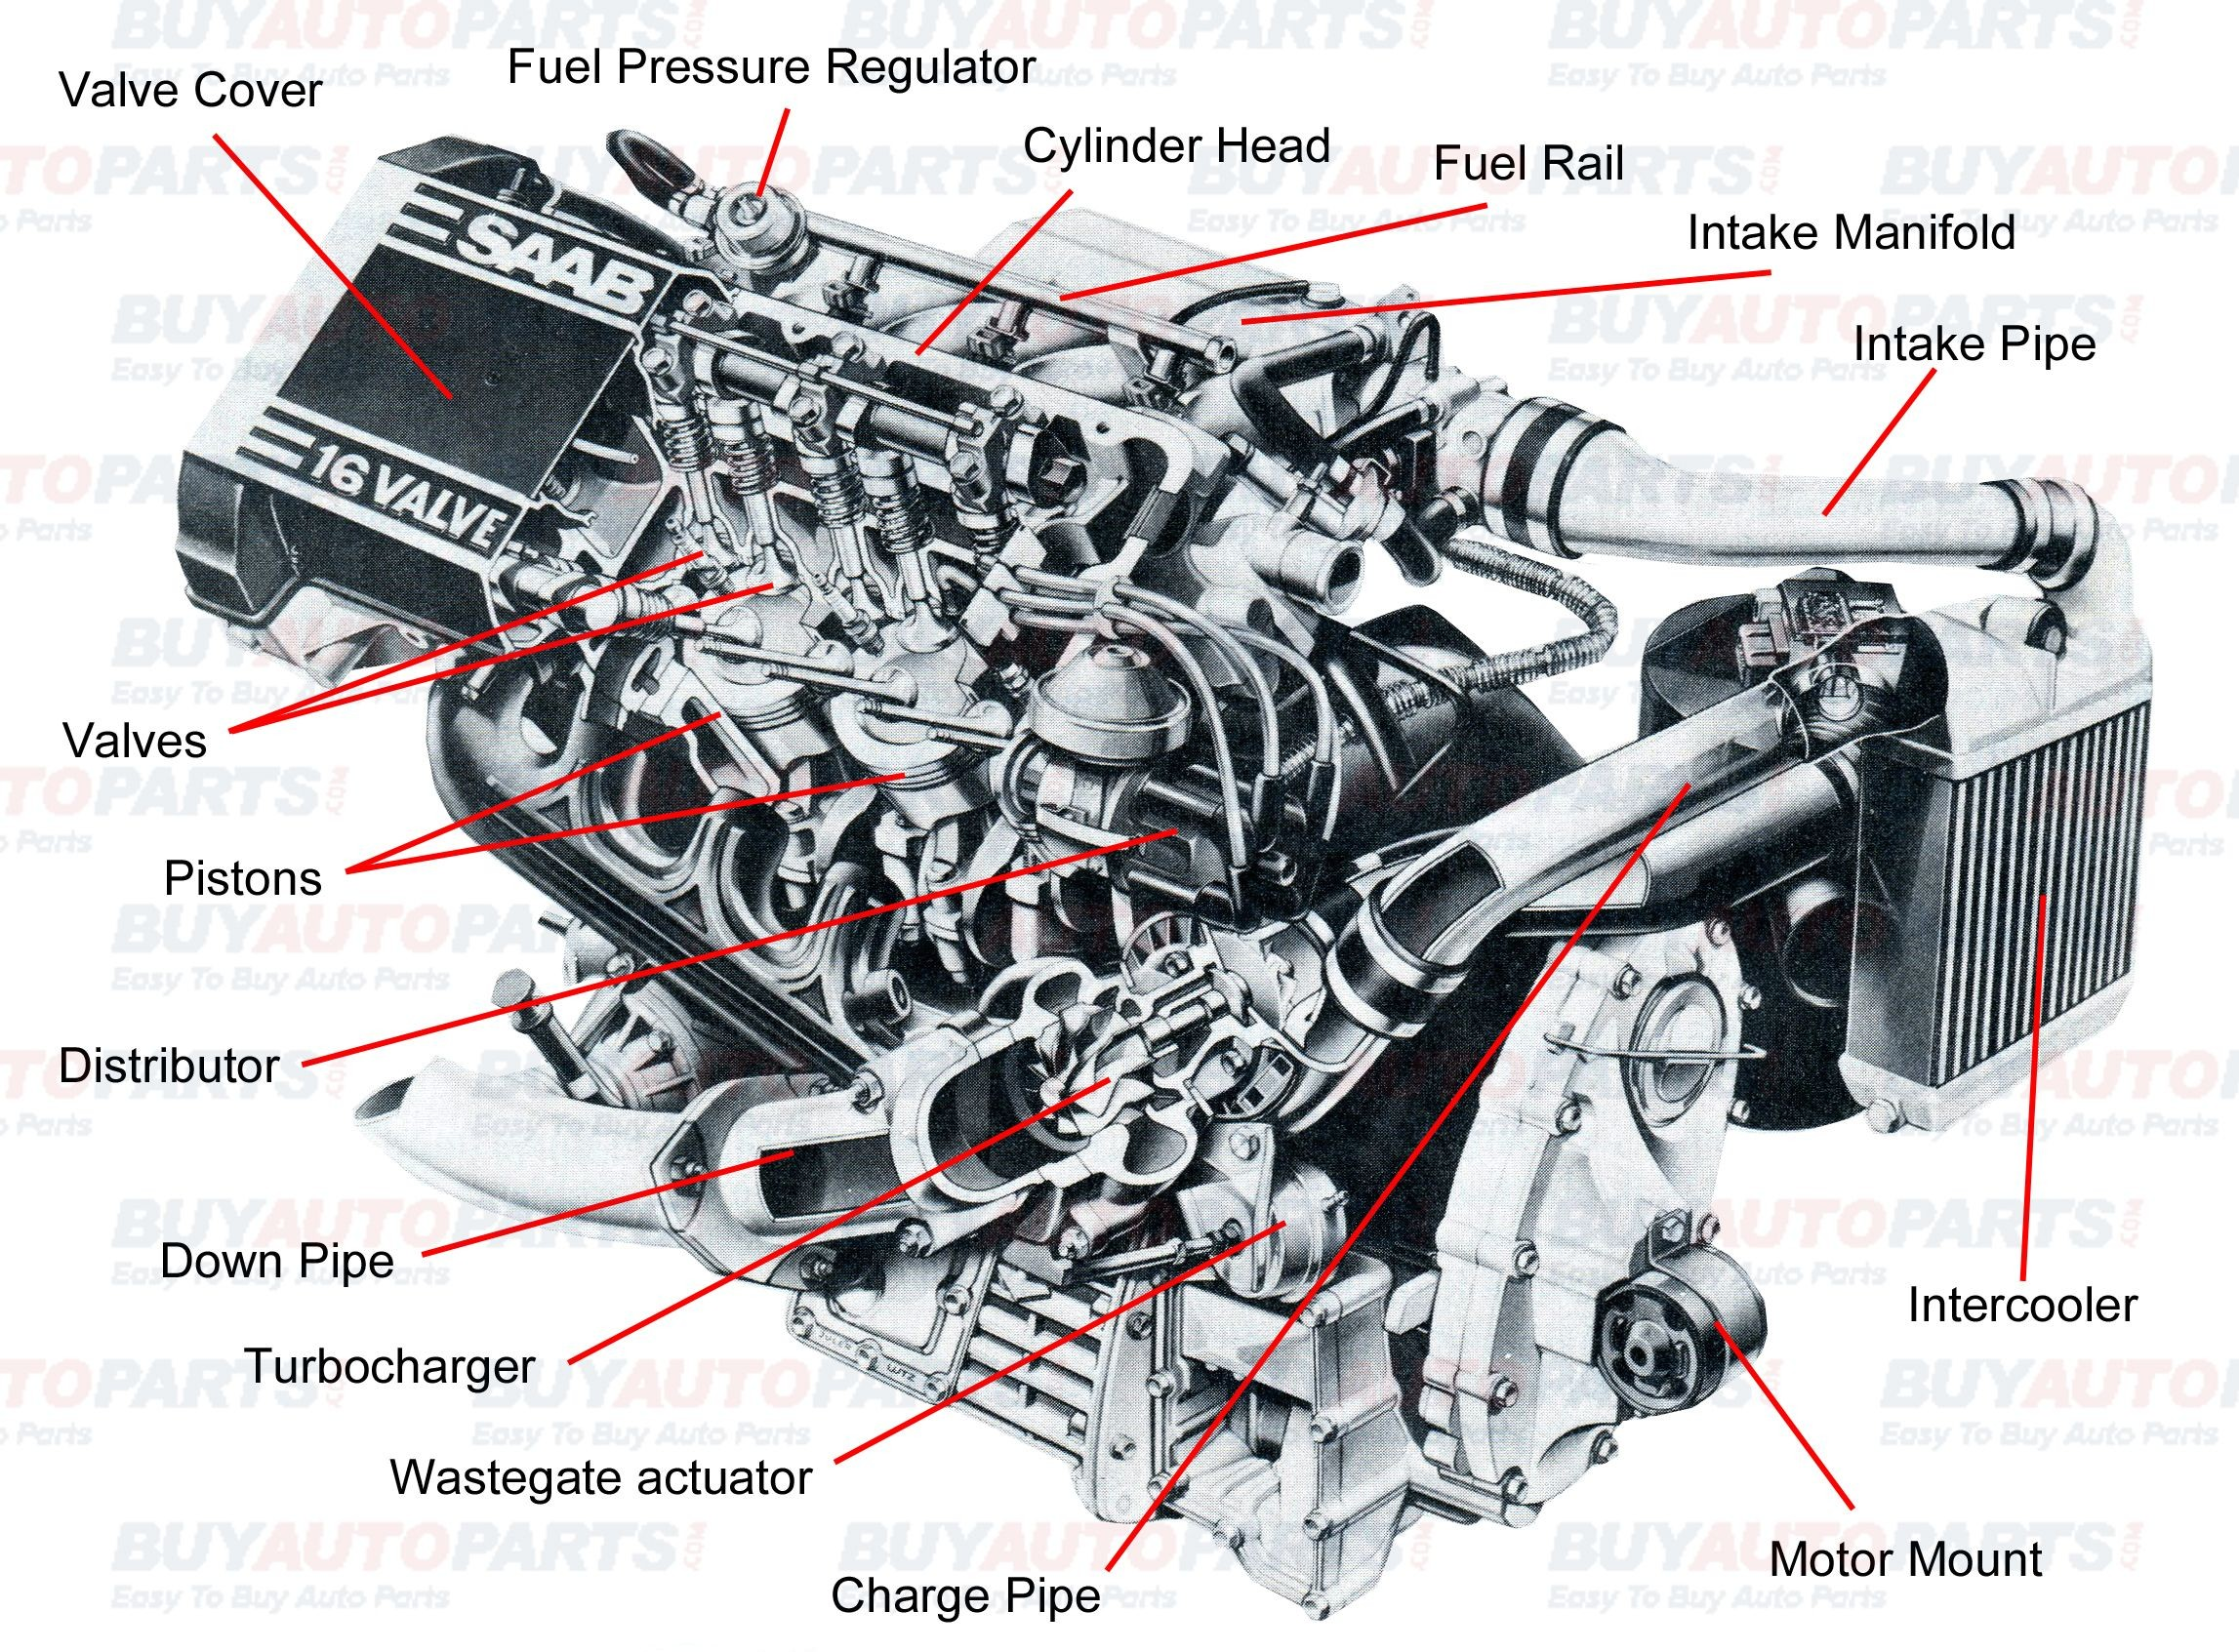 Simple Diesel Engine Diagram Pin by Jimmiejanet Testellamwfz On What Does An Engine with Turbo Of Simple Diesel Engine Diagram 94 Windstar Wiring Diagram Wiring Diagram Datasource